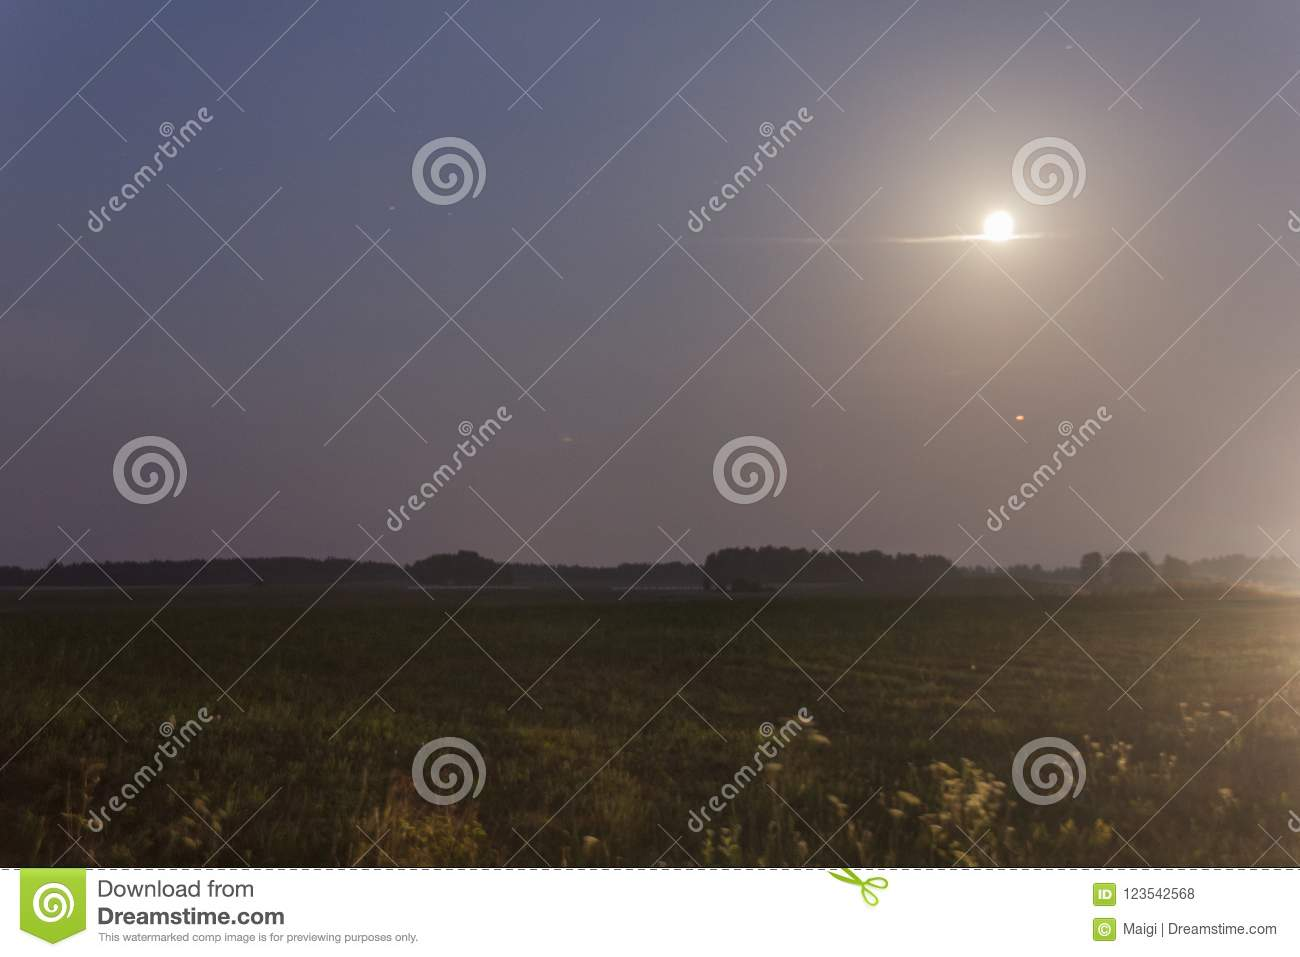 Download Nocturnal Landscape In The Moonlight Stock Photo - Image of moon, lunar: 123542568